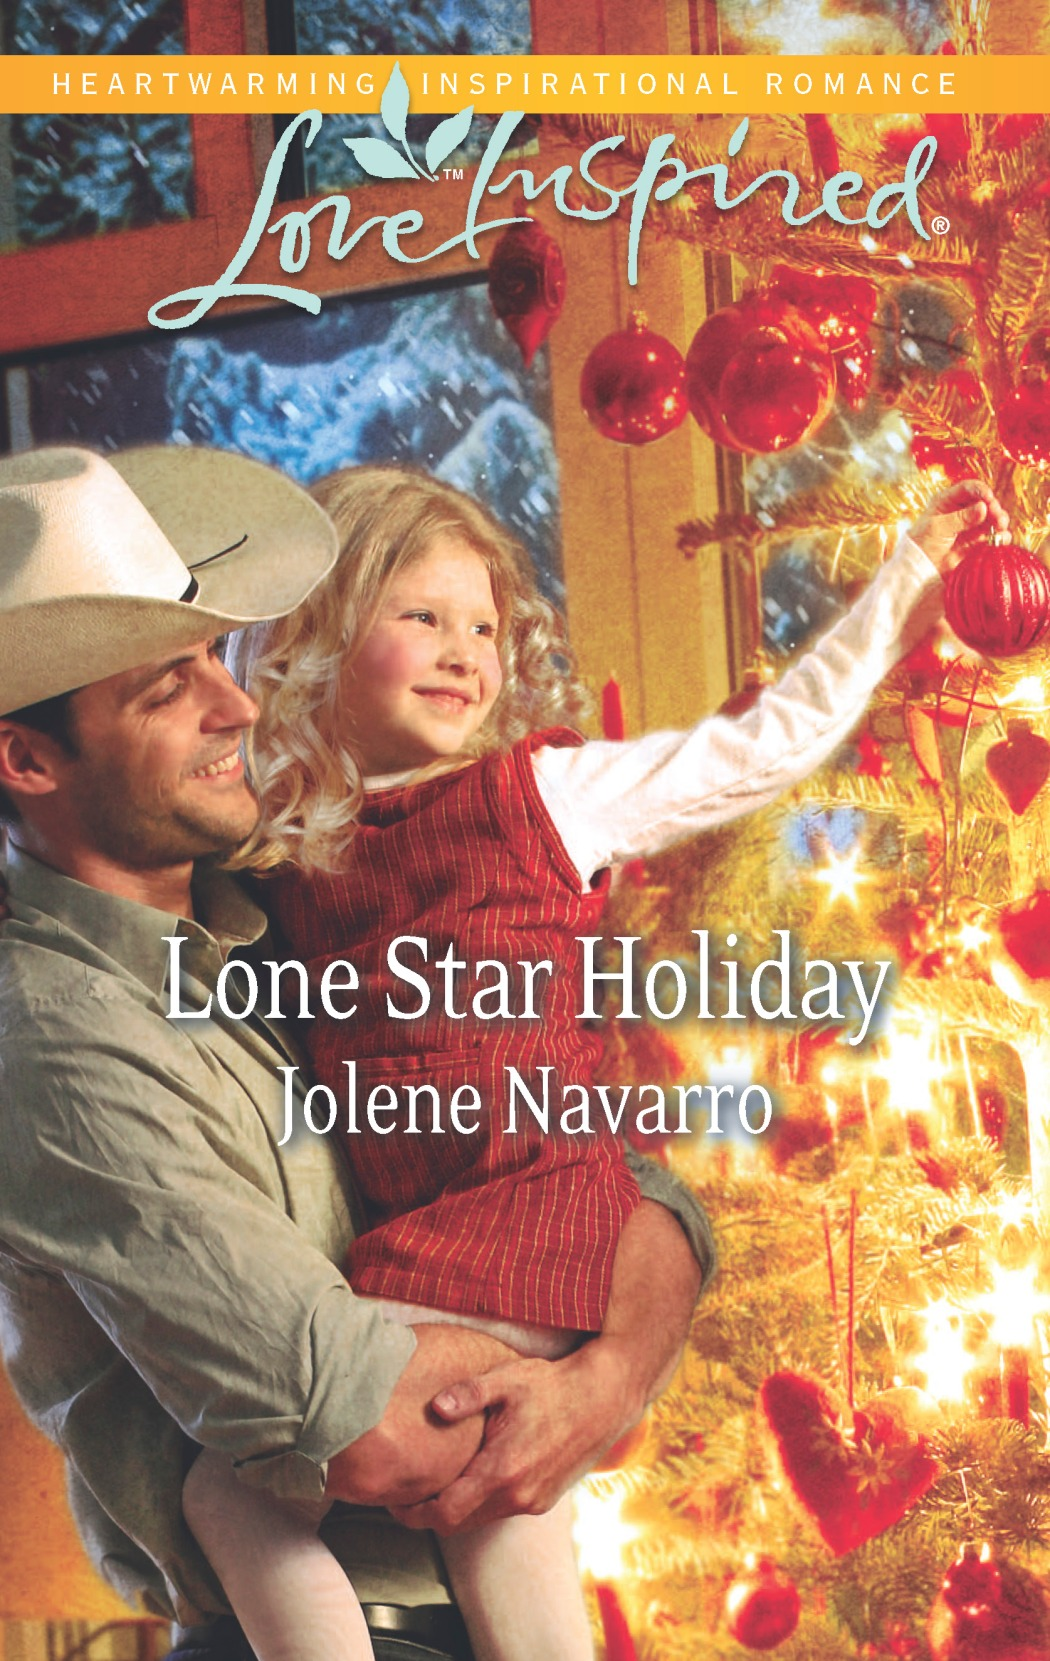 The Cover Art is Here for Lone Star Holiday!